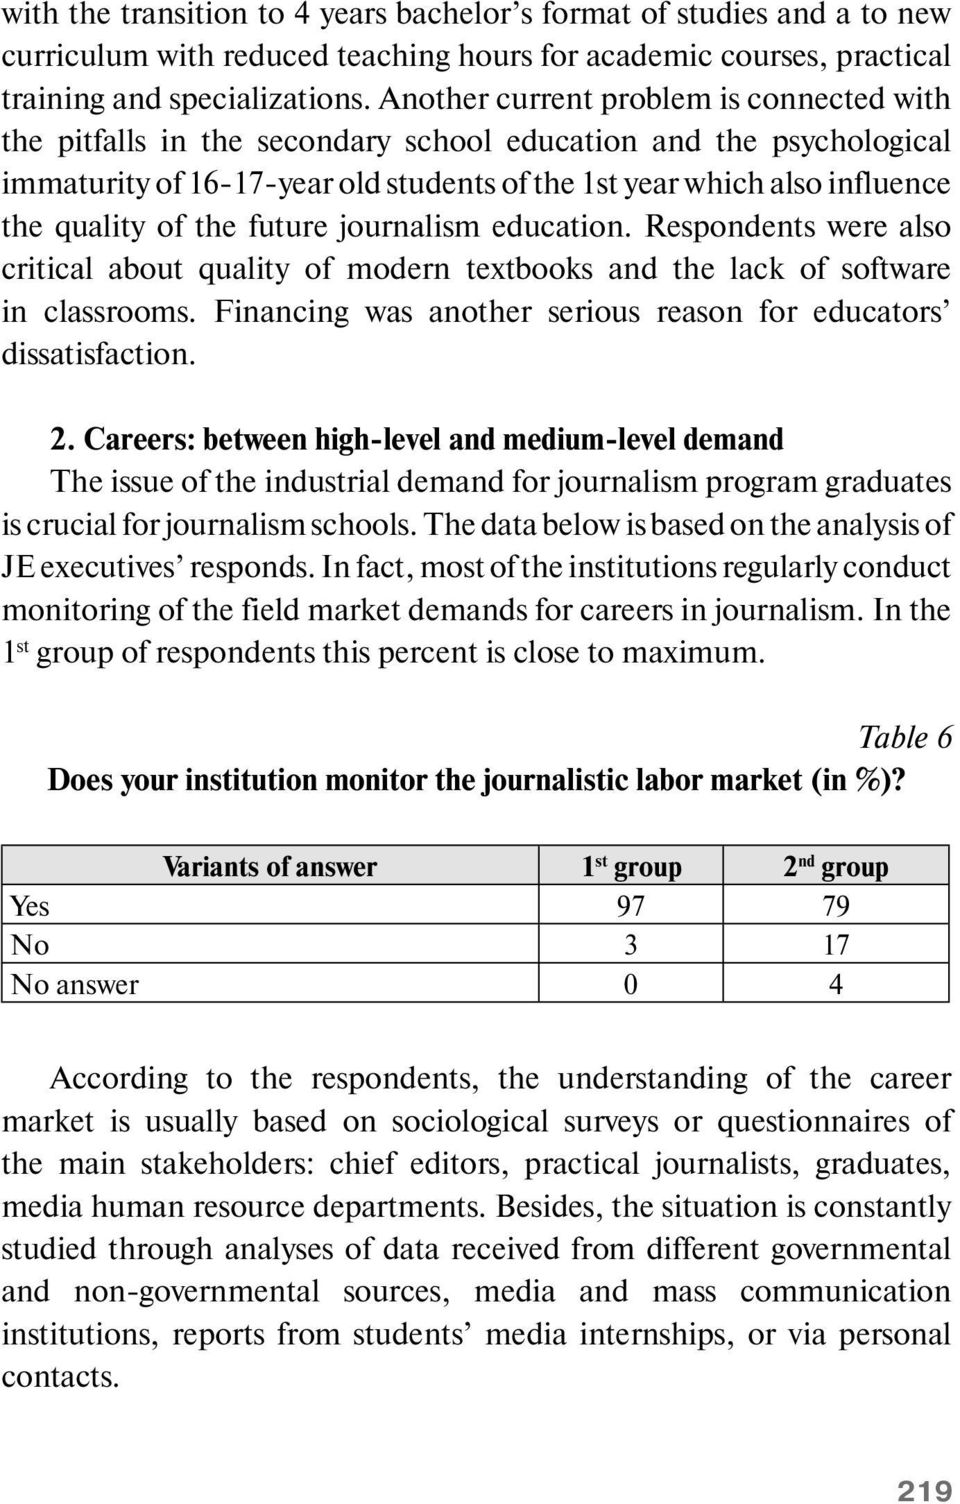 of the future journalism education. Respondents were also critical about quality of modern textbooks and the lack of software in classrooms.